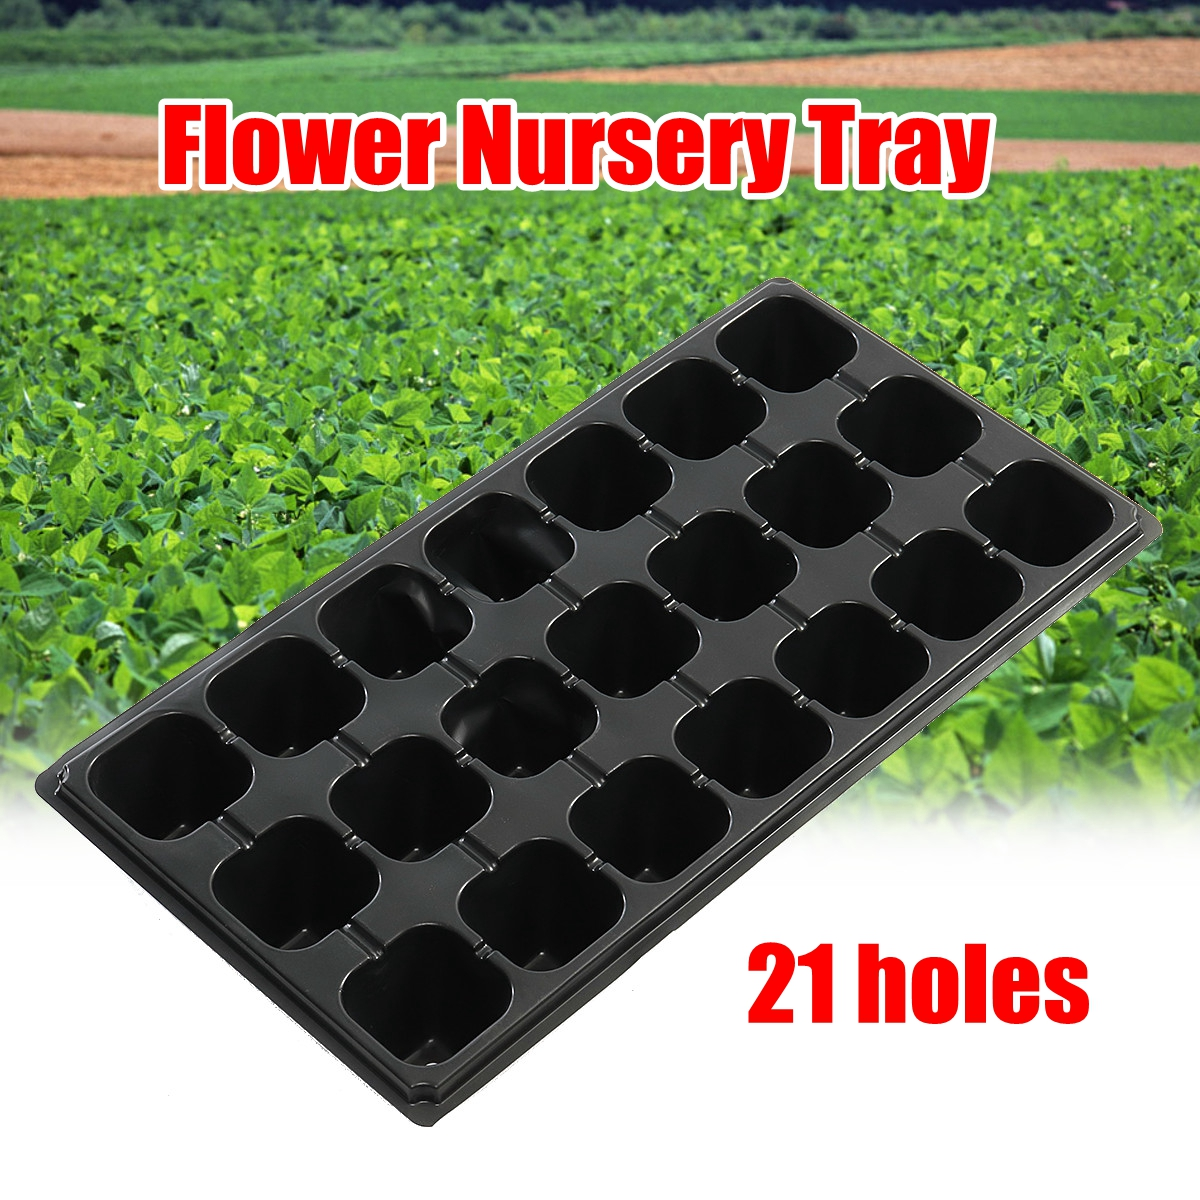 1Pcs Plant Flower Nursery Tray Planting Planter Container Balcony Garden Growing Pot